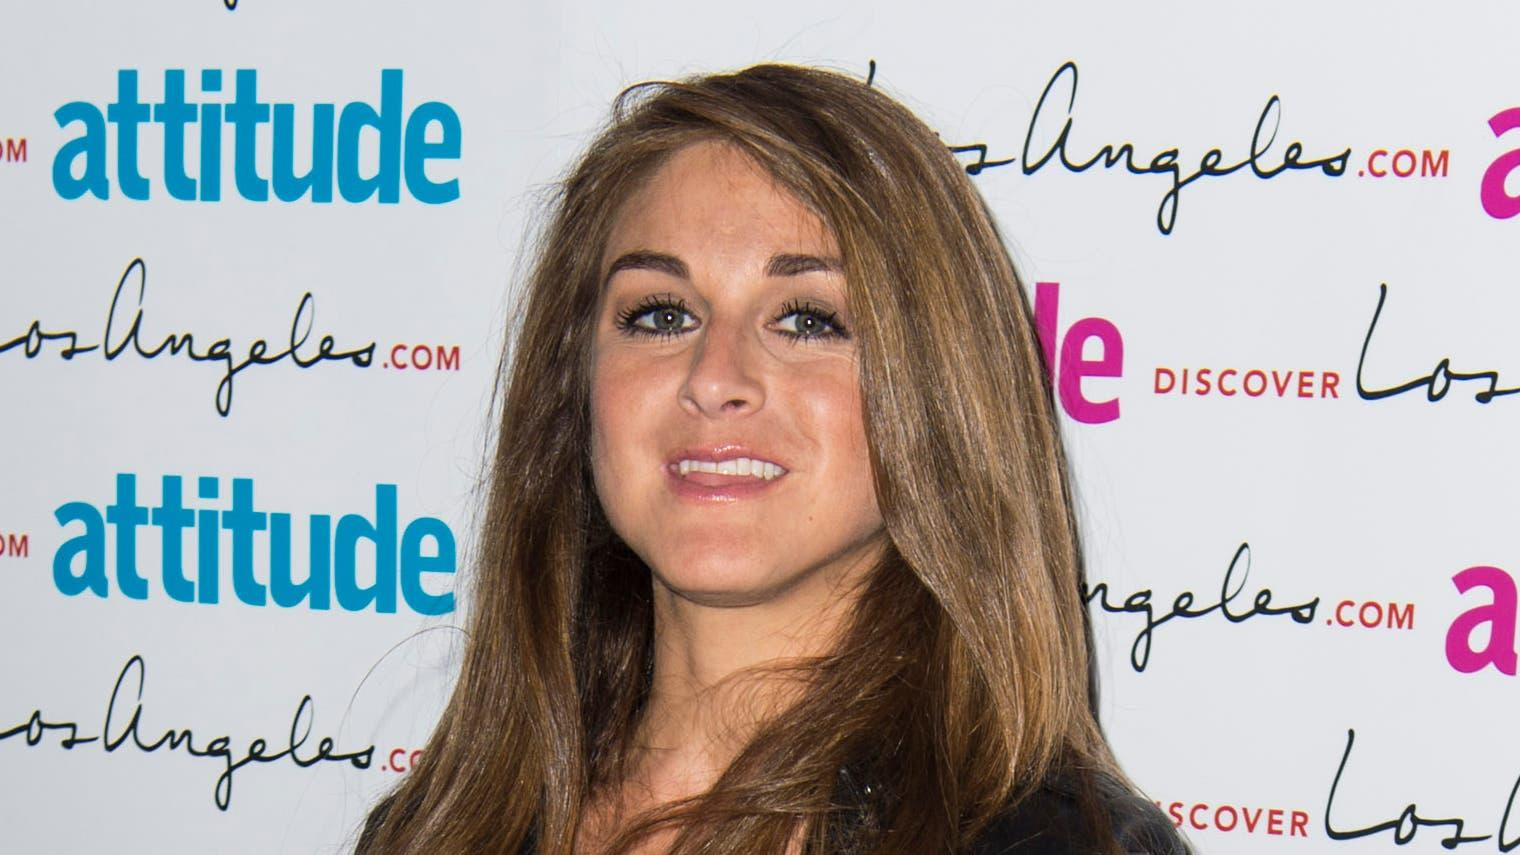 Nikki Grahame GoFundMe page reopened to help pay for funeral costs